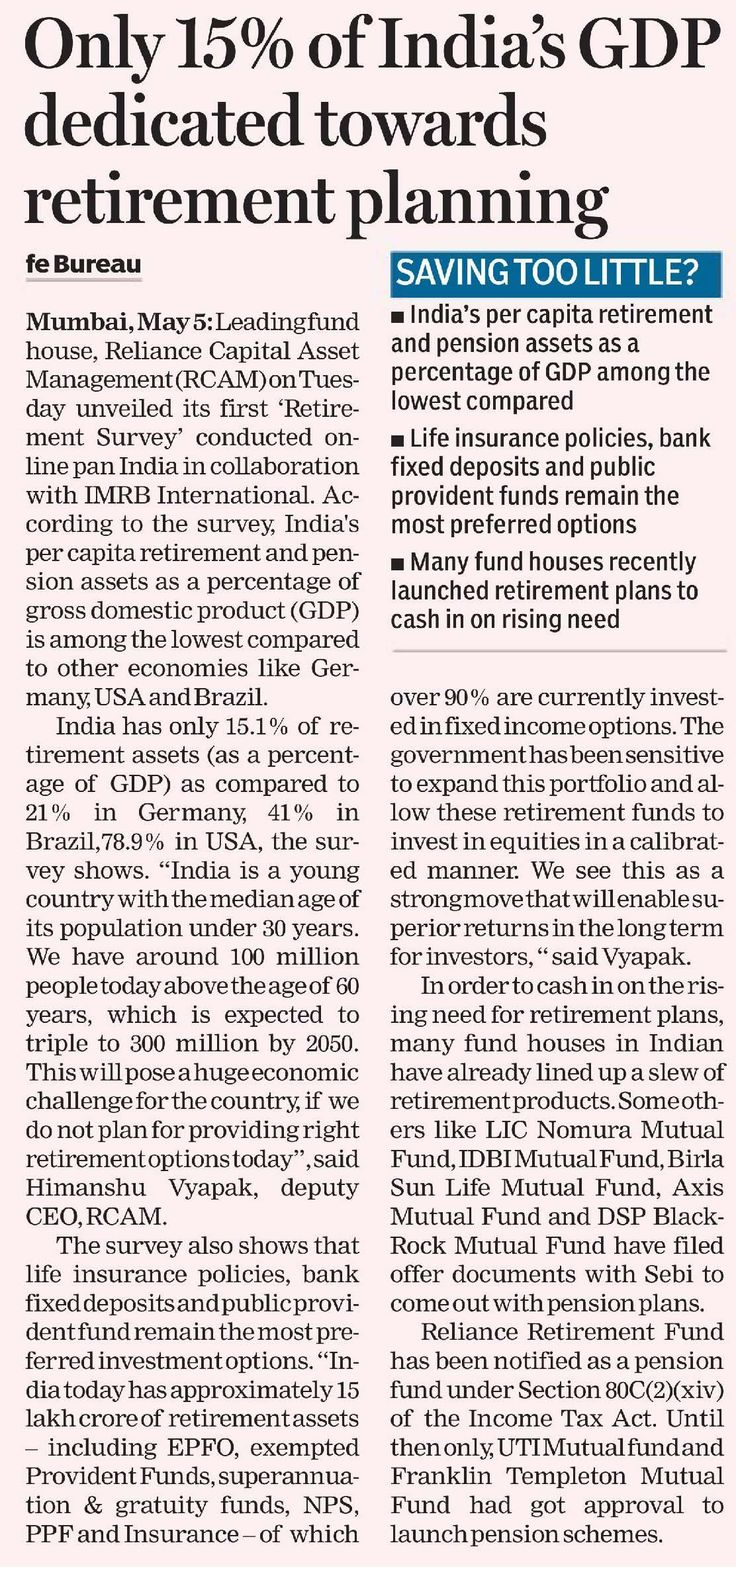 Reliance Capital Asset Management unveiled its first #RetirementSurvey conducted online pan India in collaboration with IMRB International. According to the survey, India's per capita #retirement & #pension assets as a percentage of GDP is among the lowest compared to other economies like Germany, USA & Brazil. Plan your retirement with Reliance Retirement Fund. Visit https://www.reliancemutual.com/FundsAndPerformance/Pages/Reliance-Retirement-Fund-Wealth-Creation-Scheme.aspx